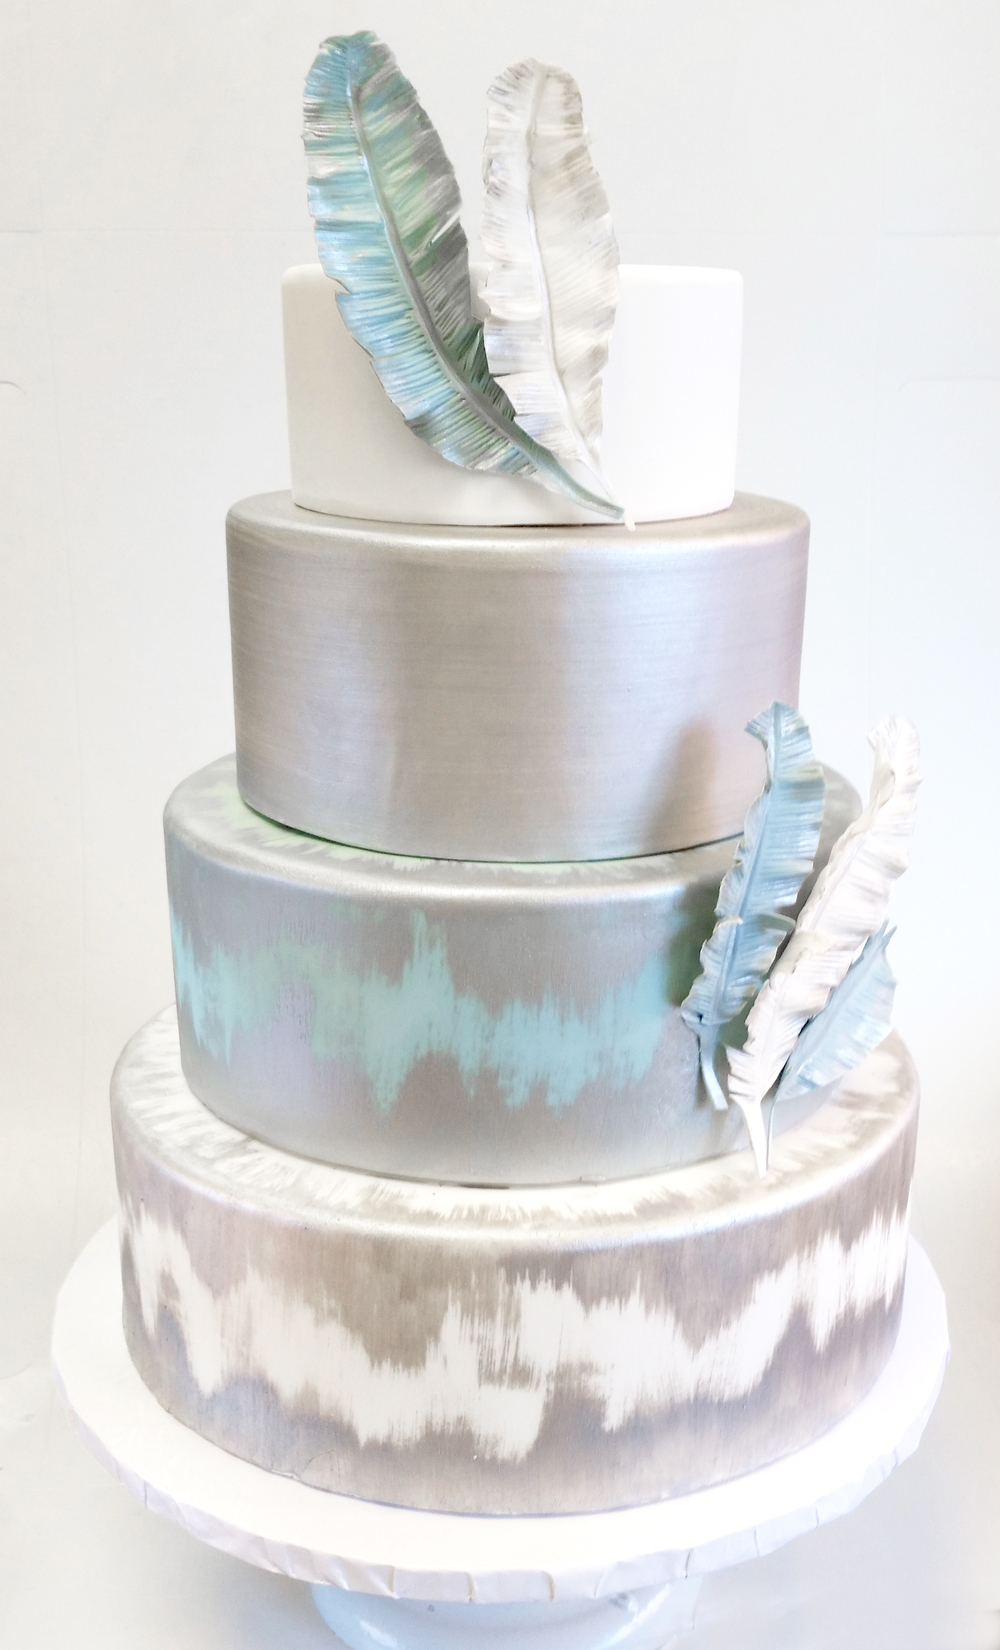 Blue%20and%20Silver%20Feather%20Cake%20-3.jpg